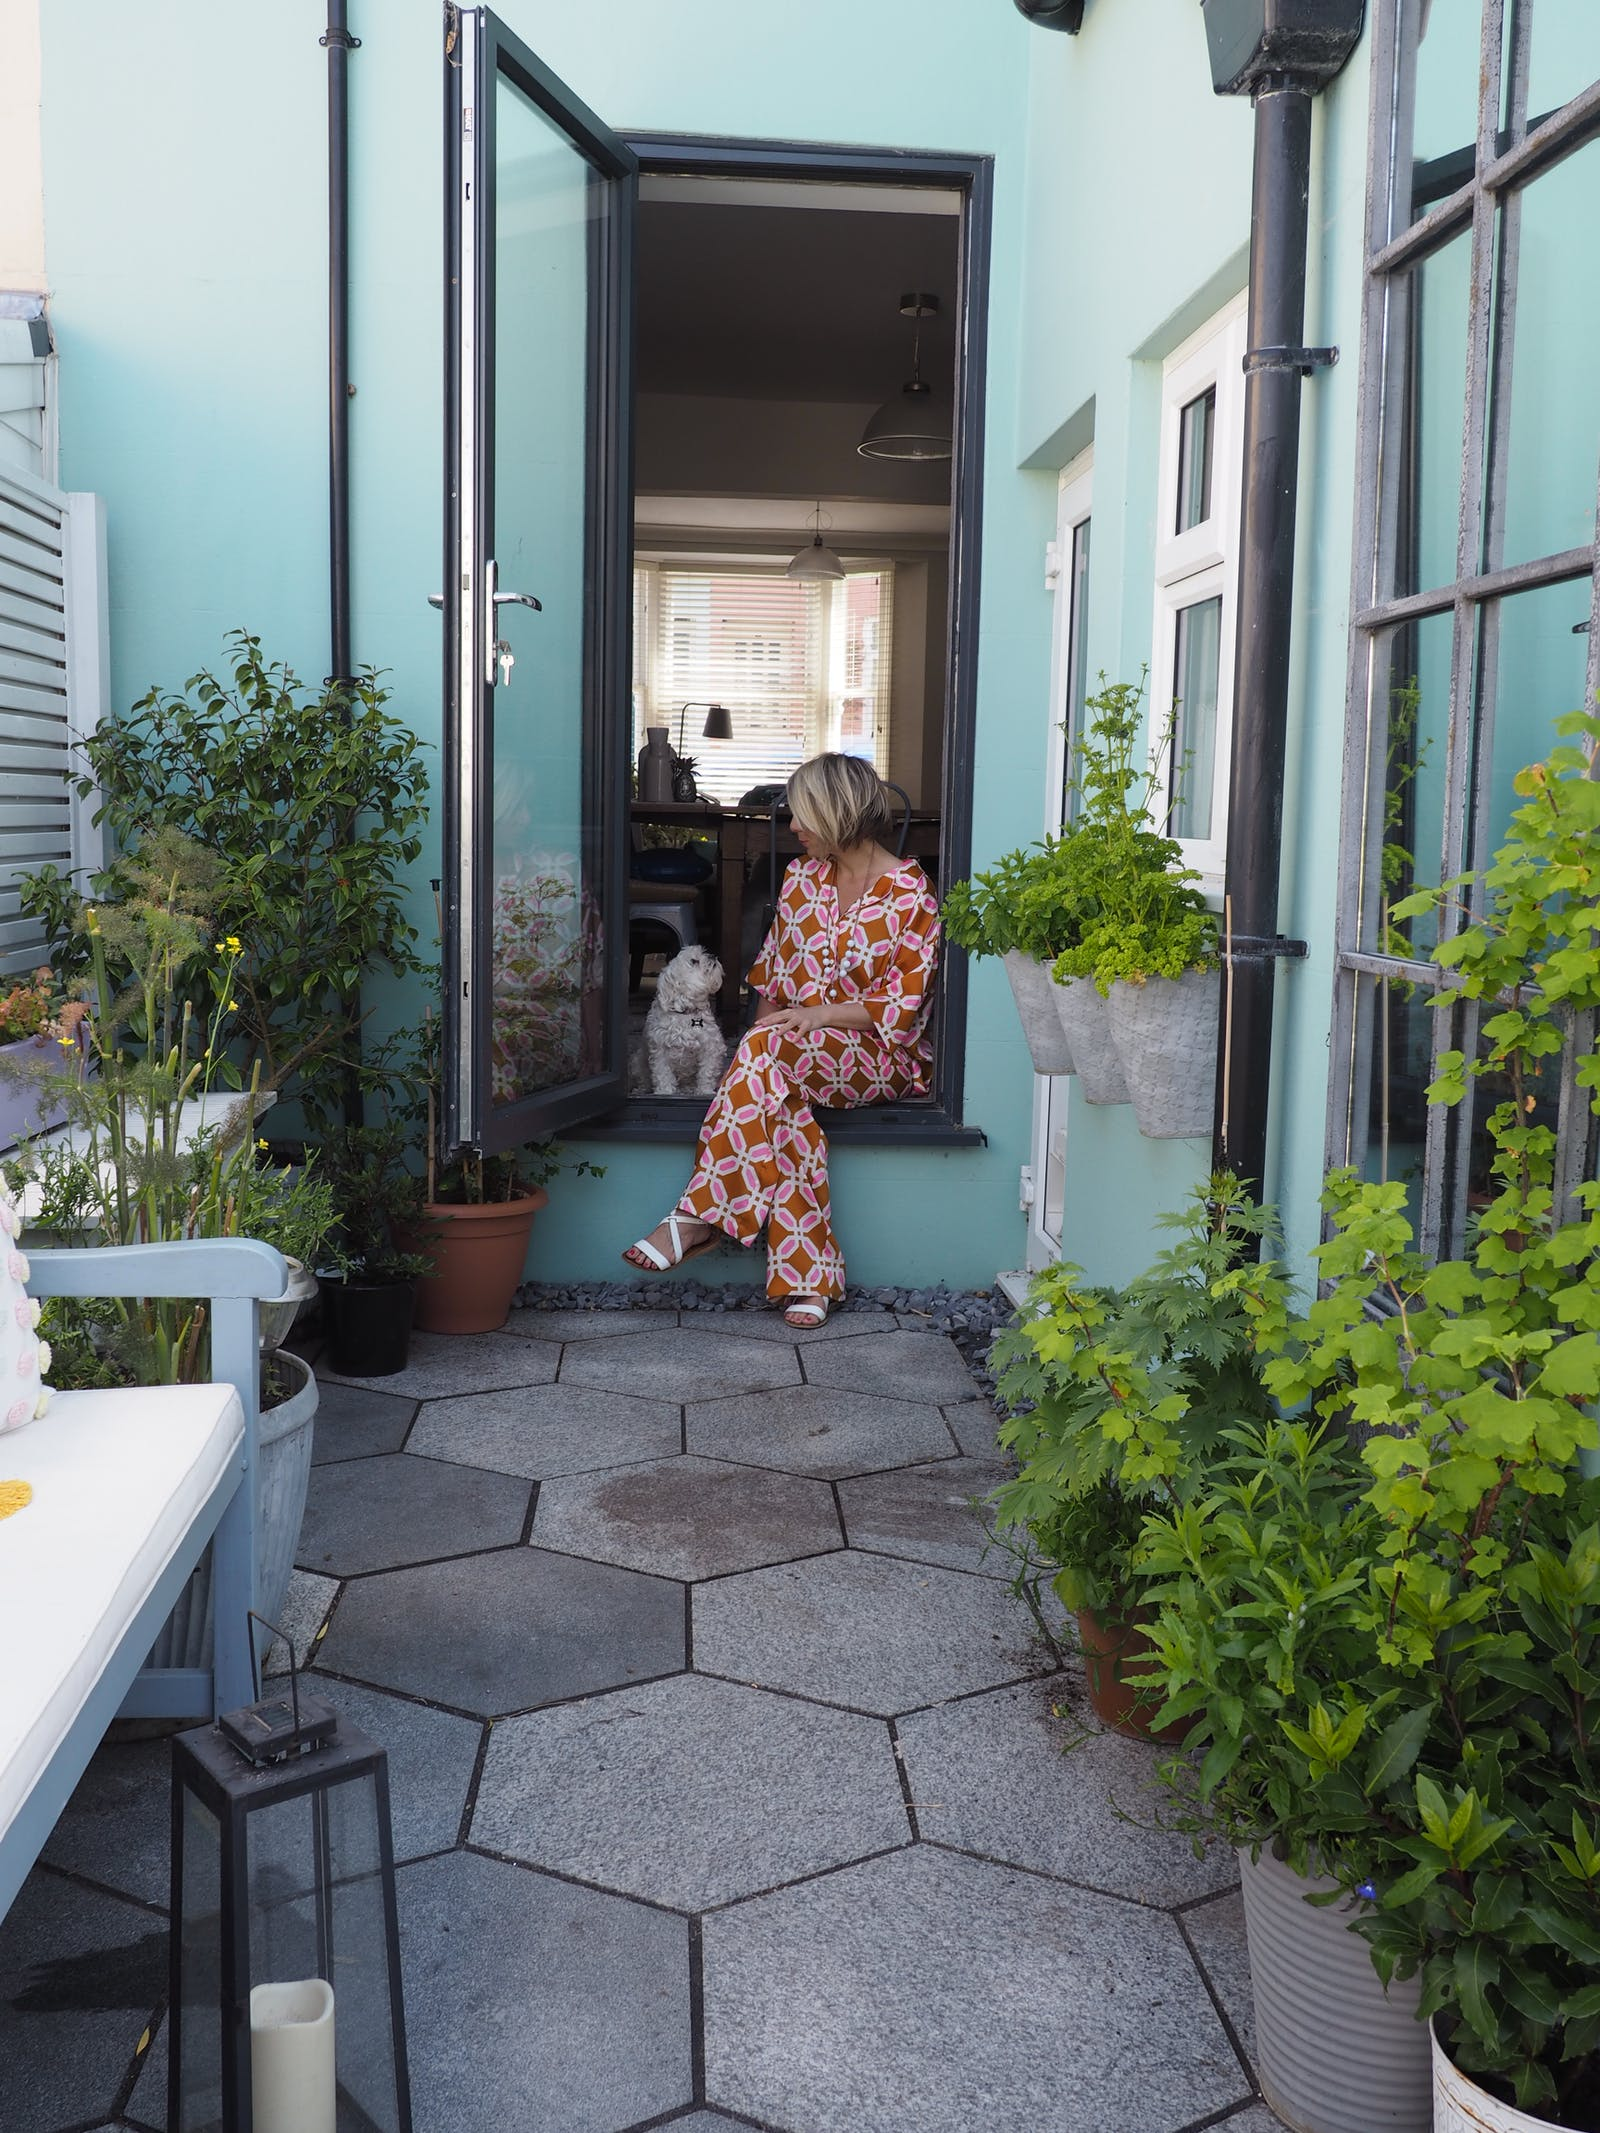 Blonde woman sitting on doorstep with dog